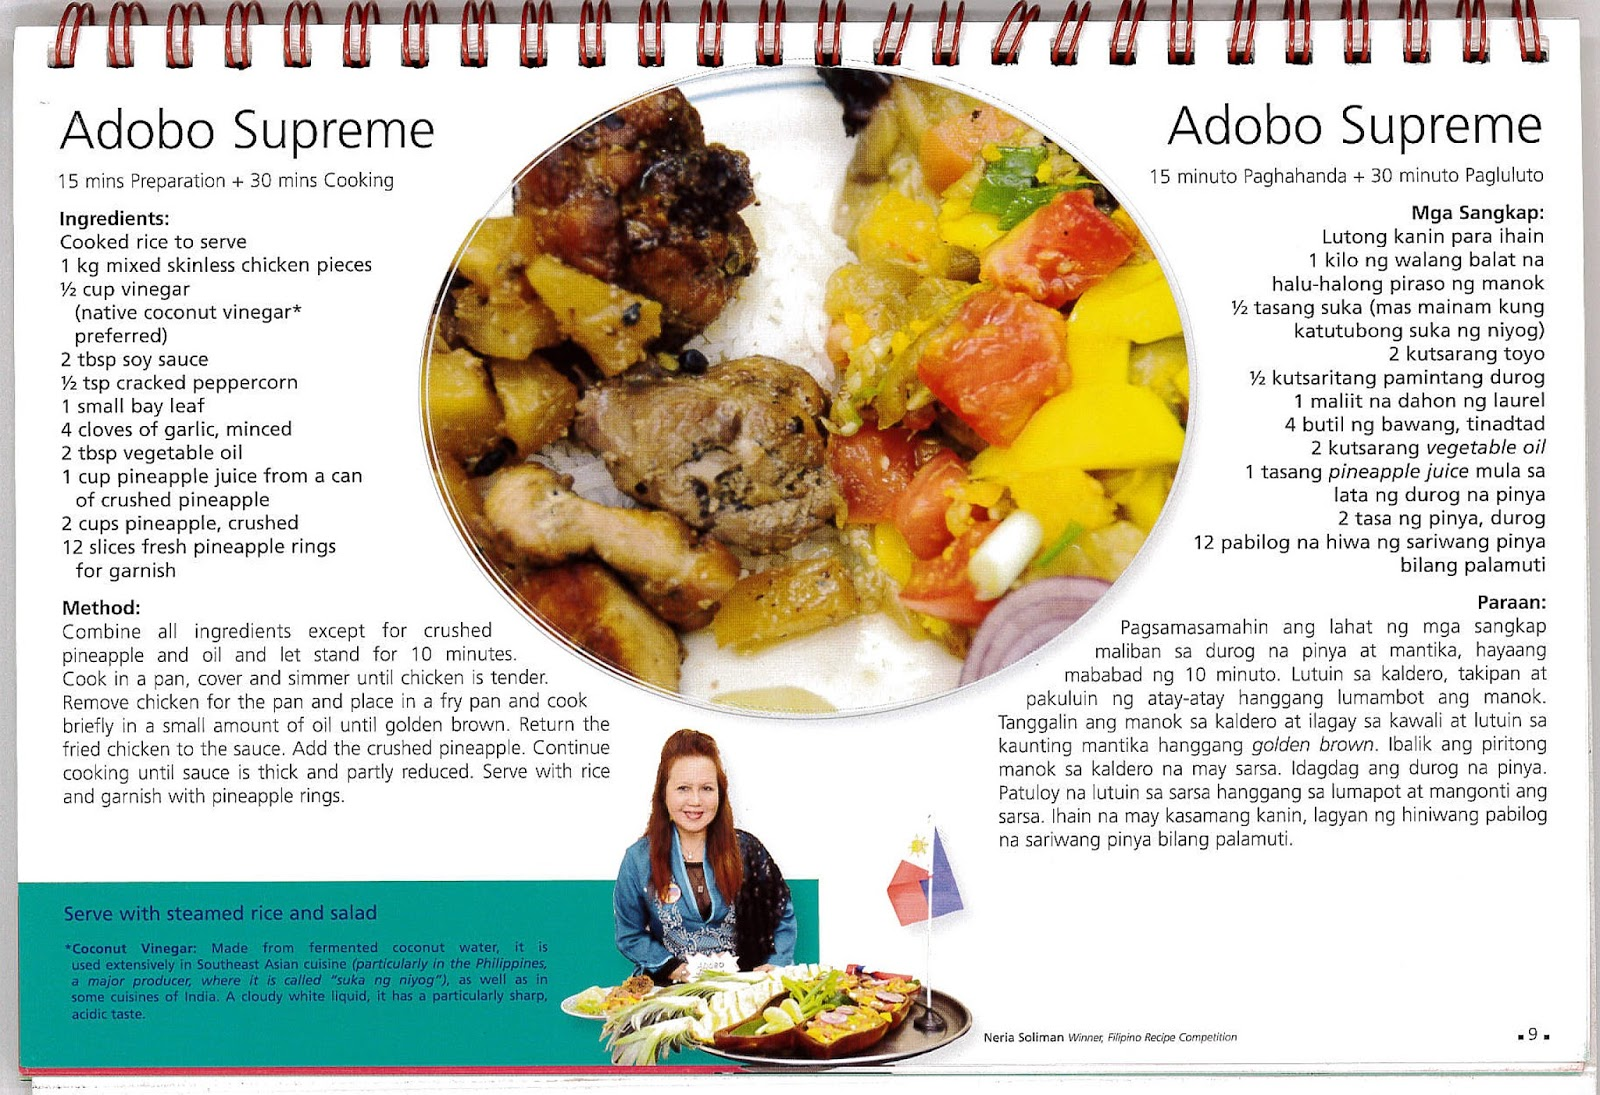 Pineapple princesses pineapple recipes from the philippines winner adobo supreme a filipino recipe contributed by neria soliman forumfinder Images